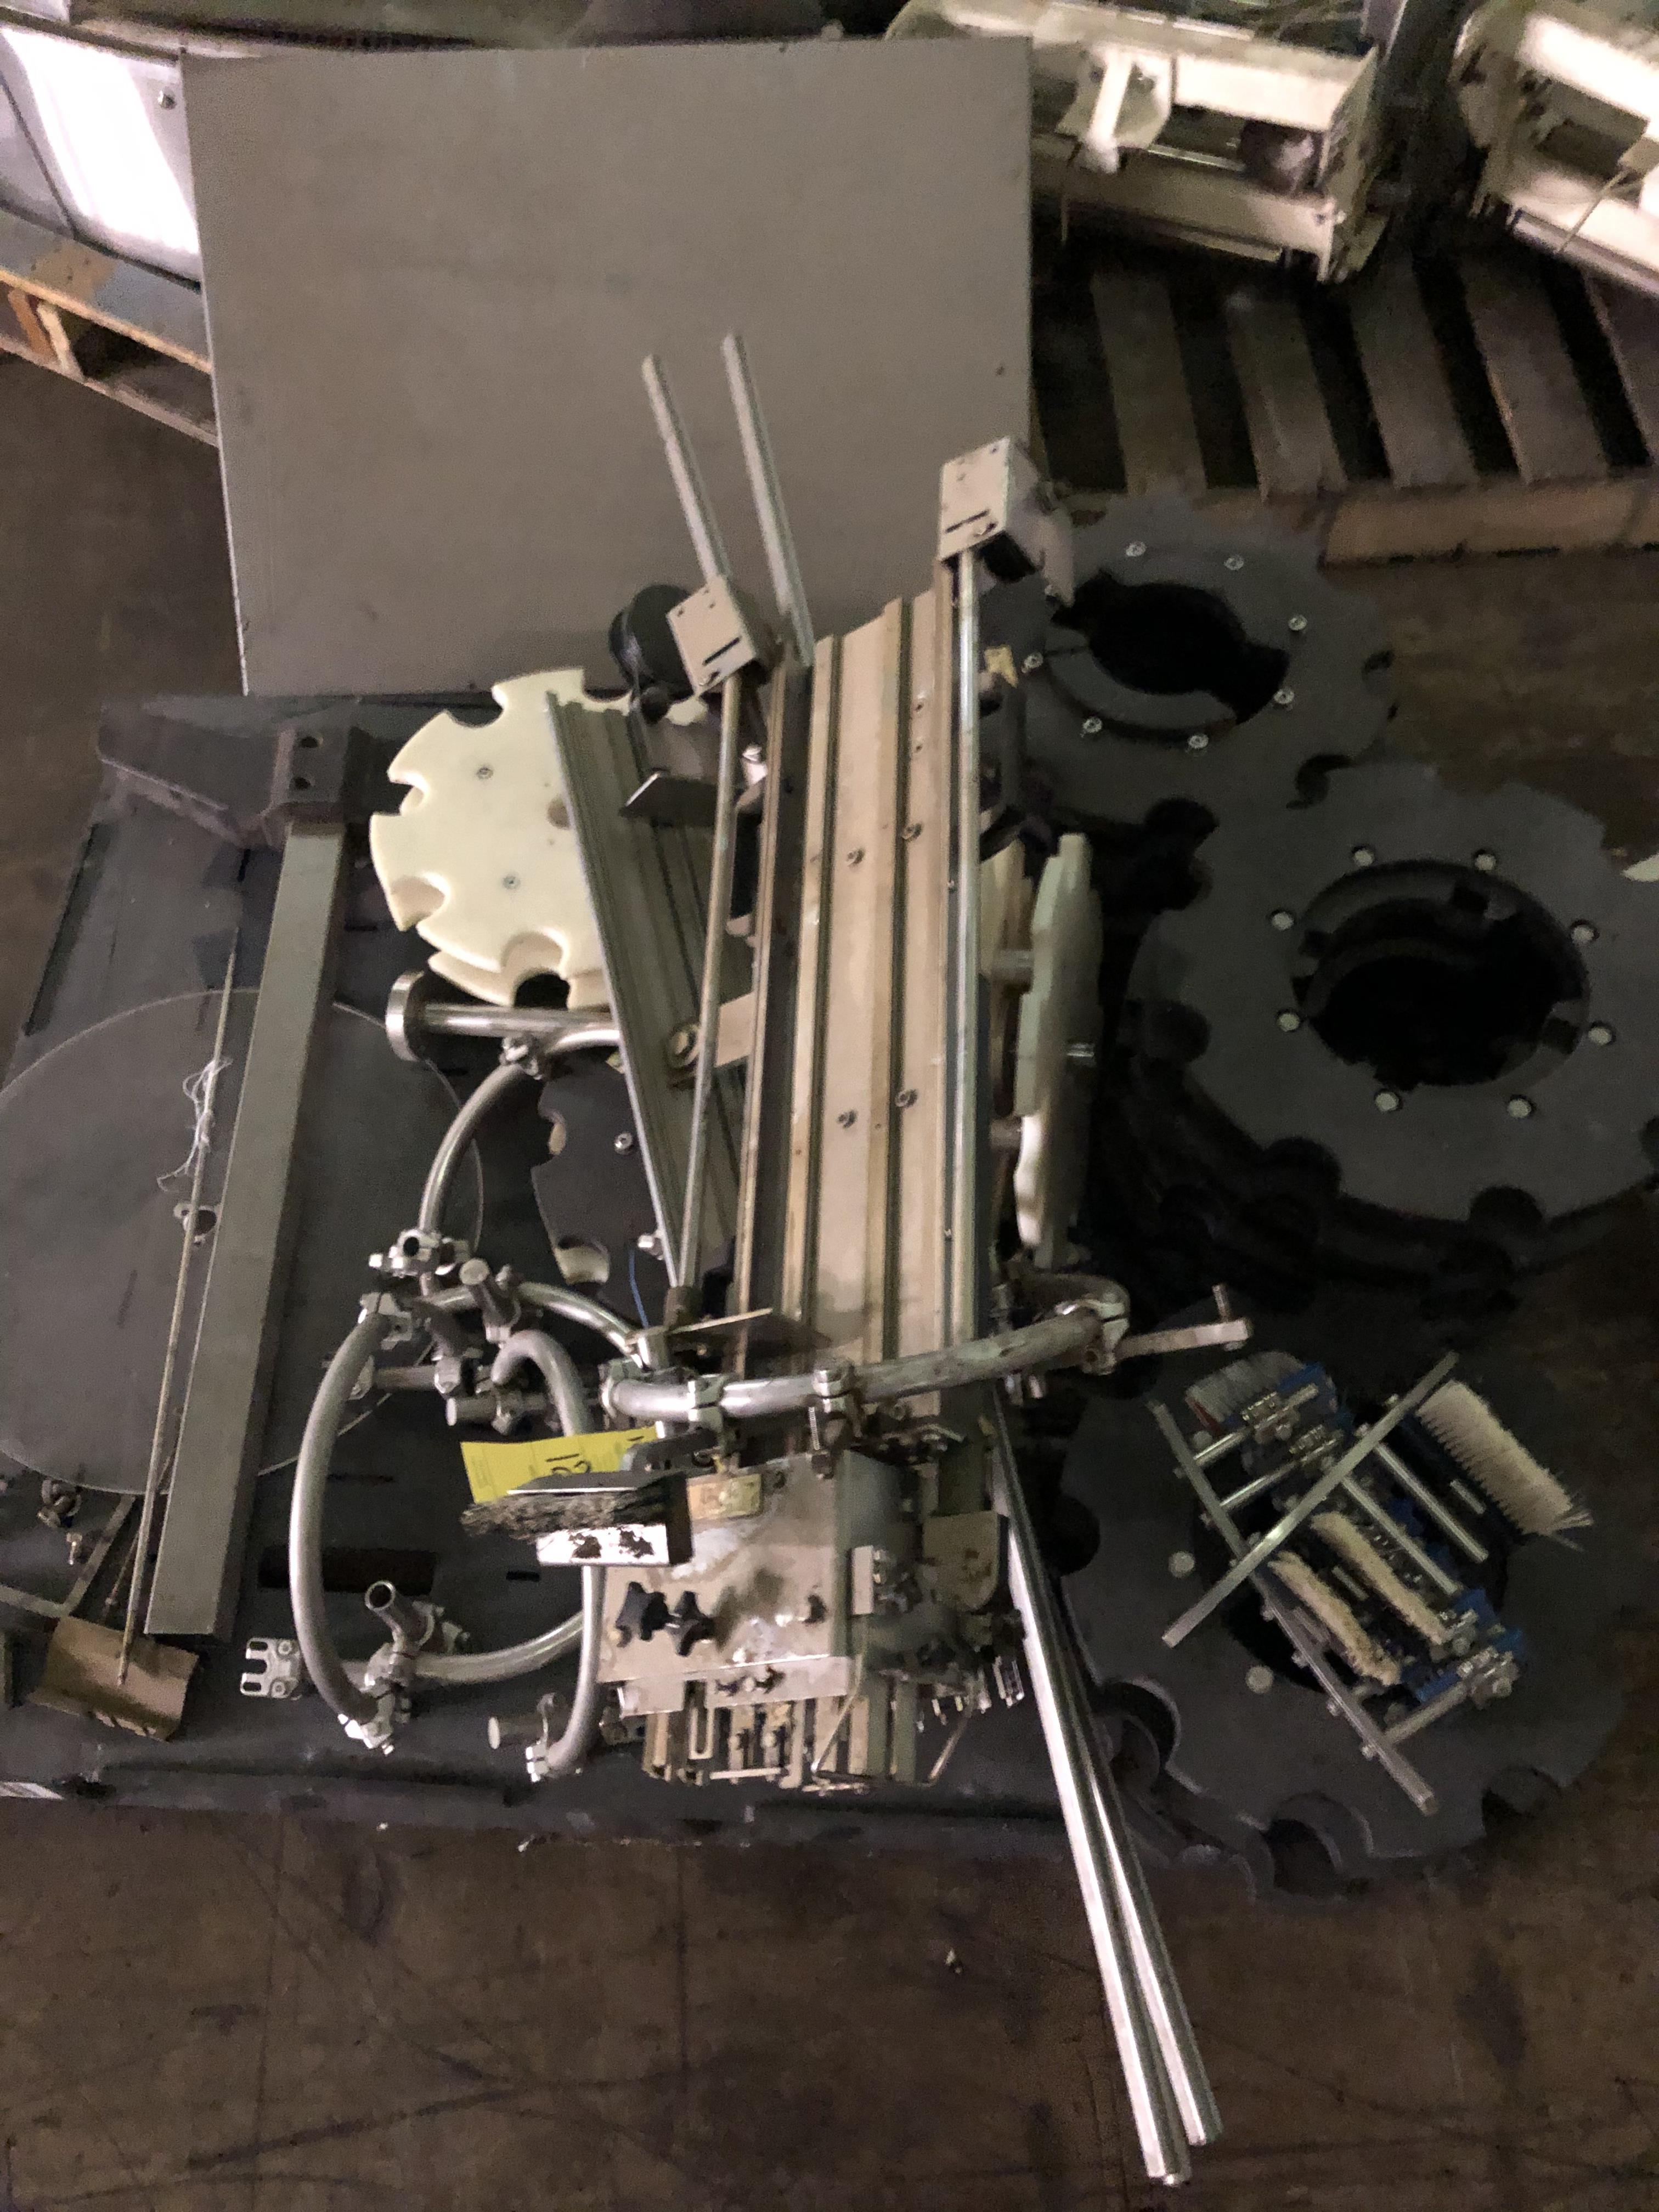 Krones Labeler, Parts & Components, RIGGING FEE - $75 - Image 3 of 3